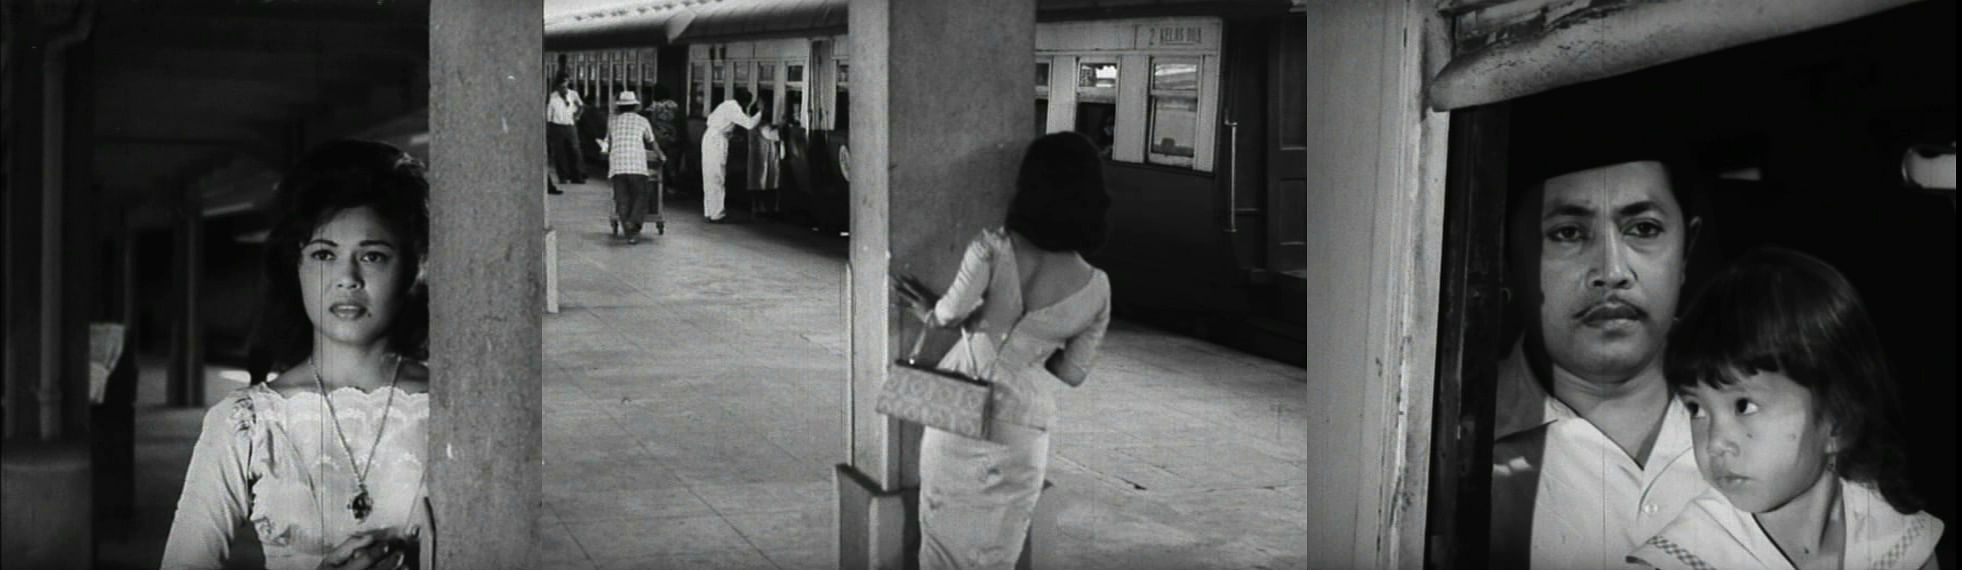 A scene from Chinta Kaseh Sayang (1965), one of the films featured on a tour of filming locations in Singapore.